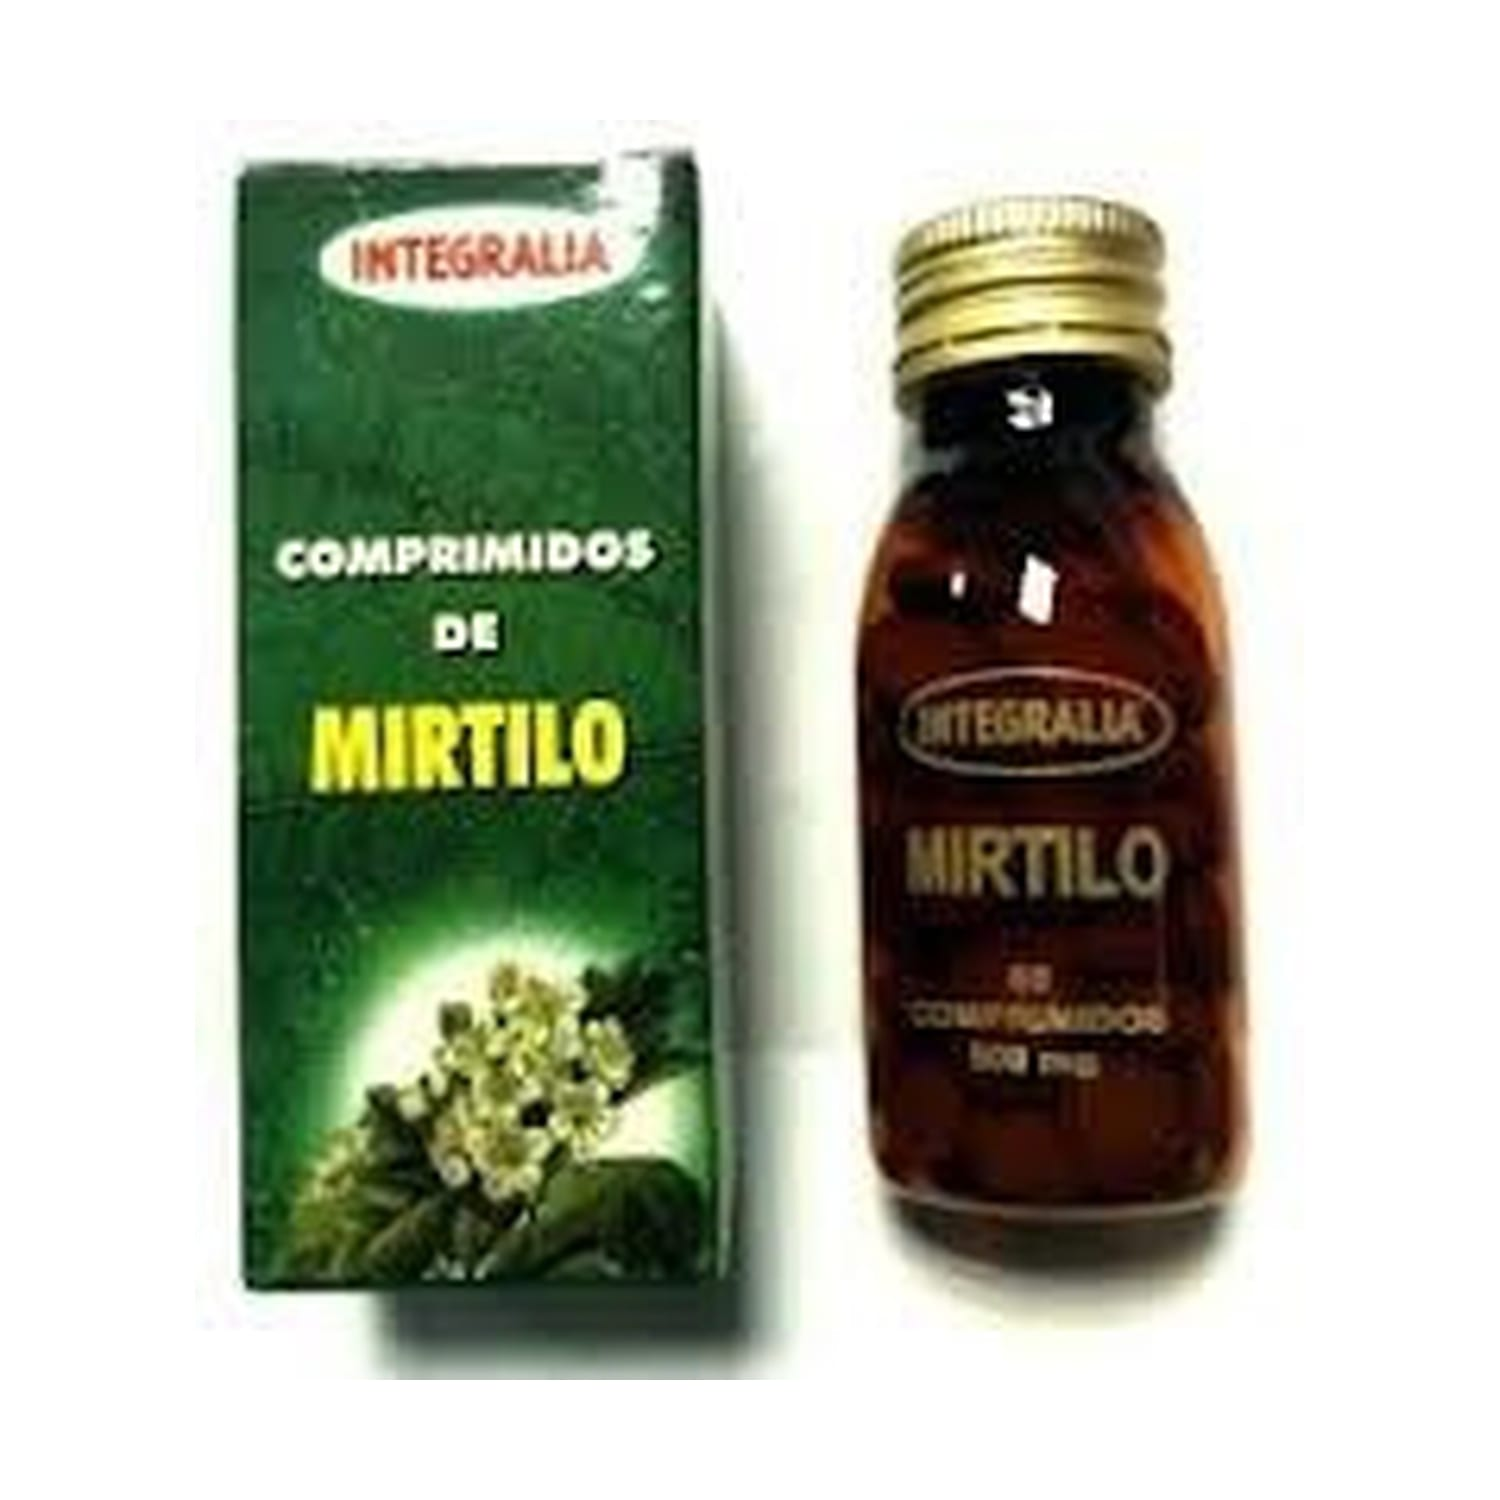 Mirtilo – Integralia – 60 comprimidos